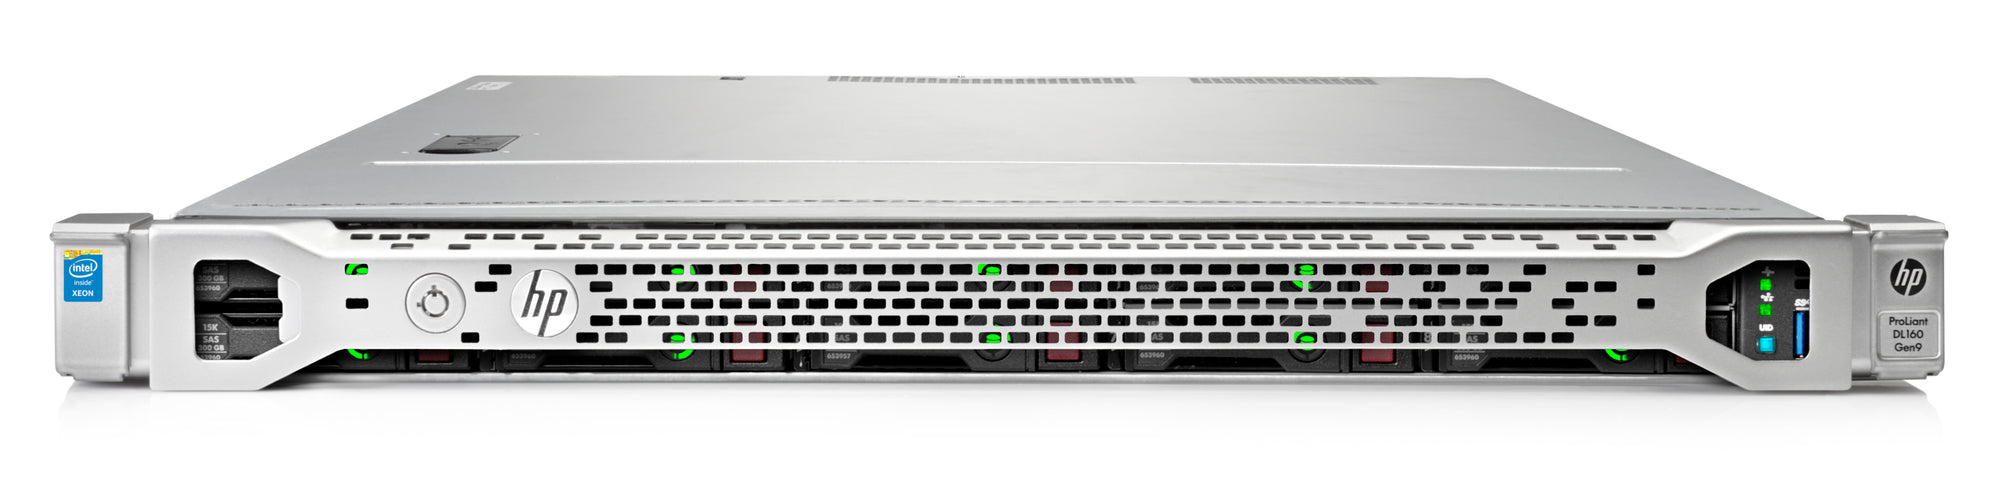 Refurbished HPE ProLiant DL160 Gen9 Configure to Order Server